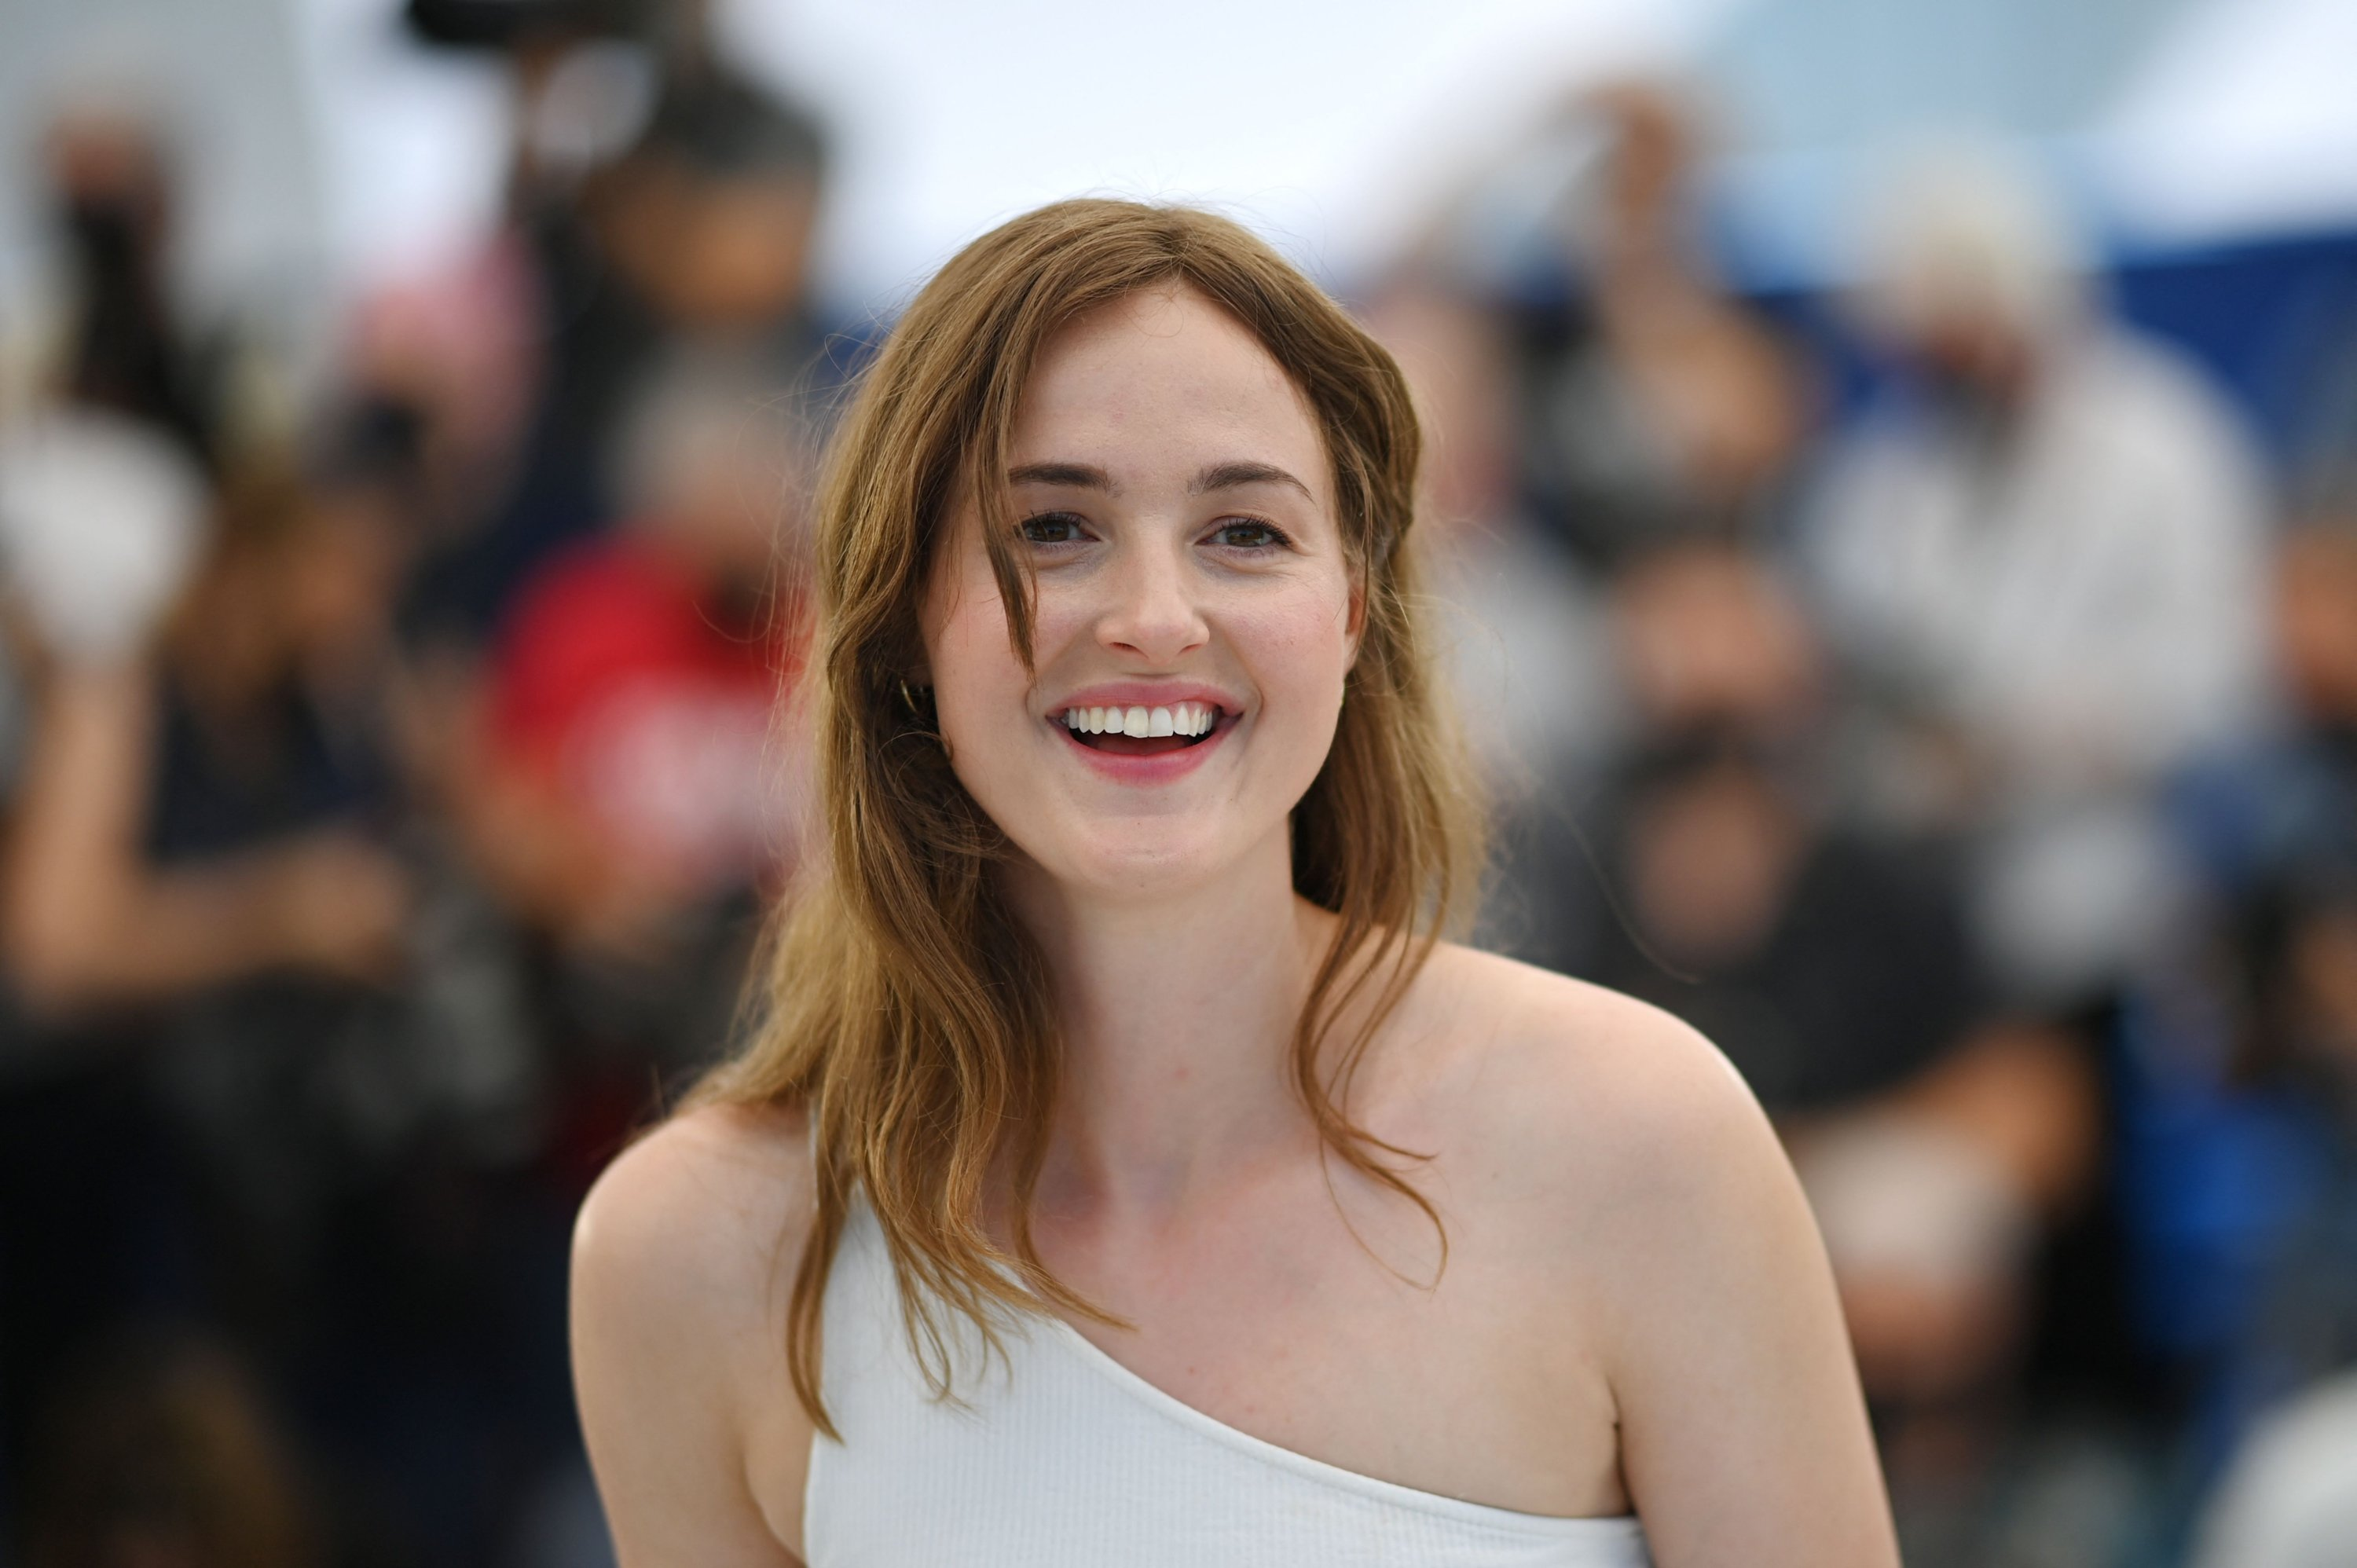 """Norwegian actress Renate Reinsve smiles during a photocall for the film """"Verdens Verste Menneske"""" (The Worst Person In The World) at the 74th Cannes Film Festival in Cannes, France, July 9, 2021. (AFP Photo)"""